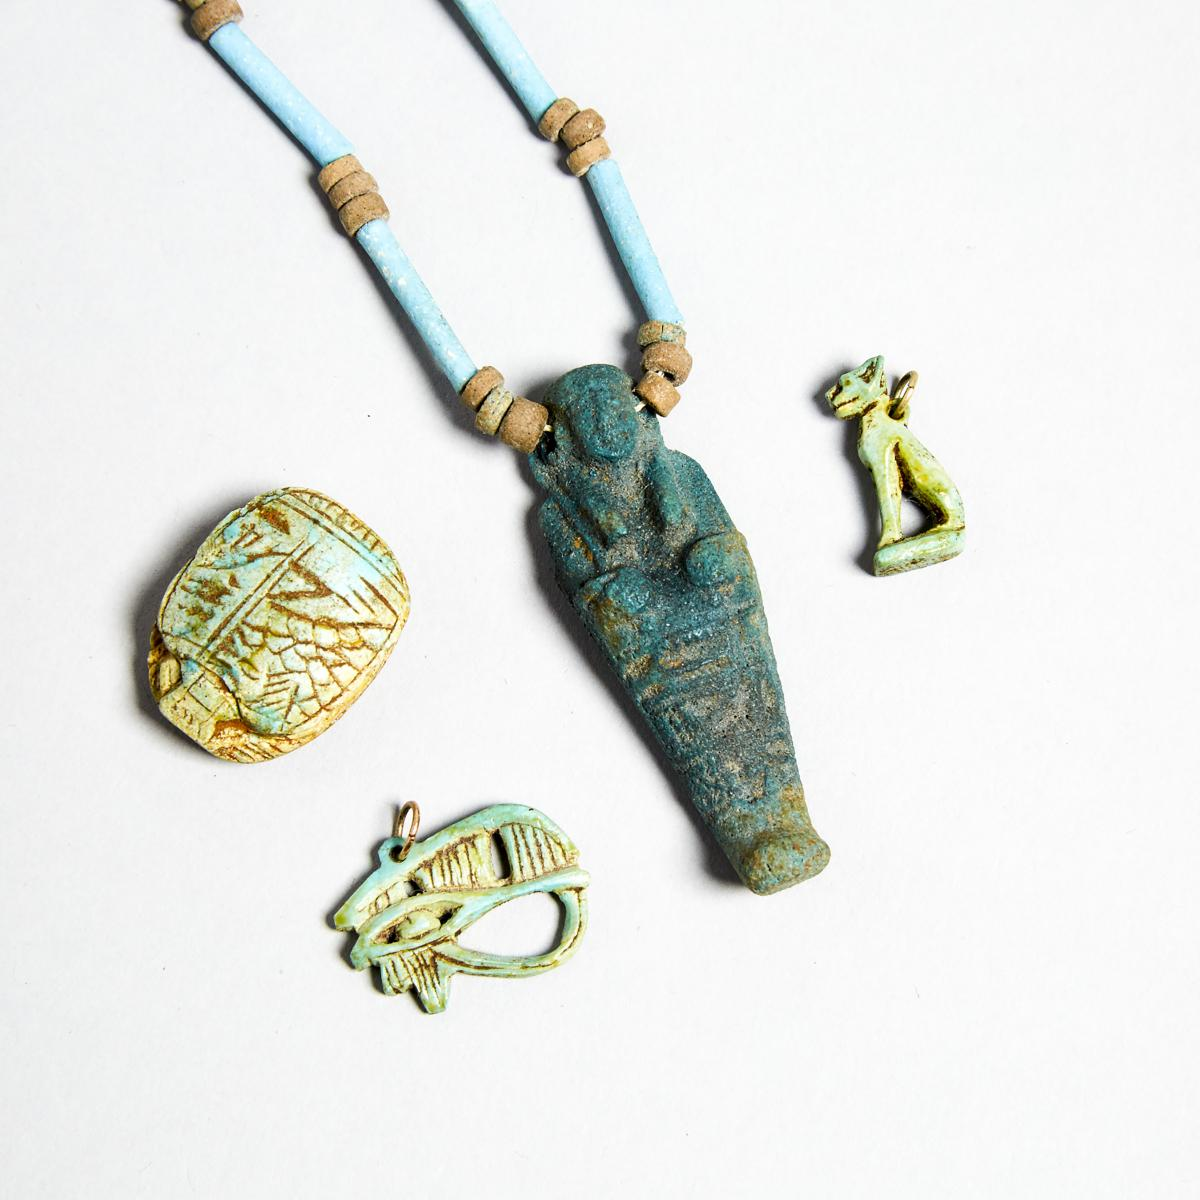 Group of Egyptian Turquoise Faience Amulets and Beads, New Kingdom to Late Period, 1550-332 B.C., sh - Image 2 of 3